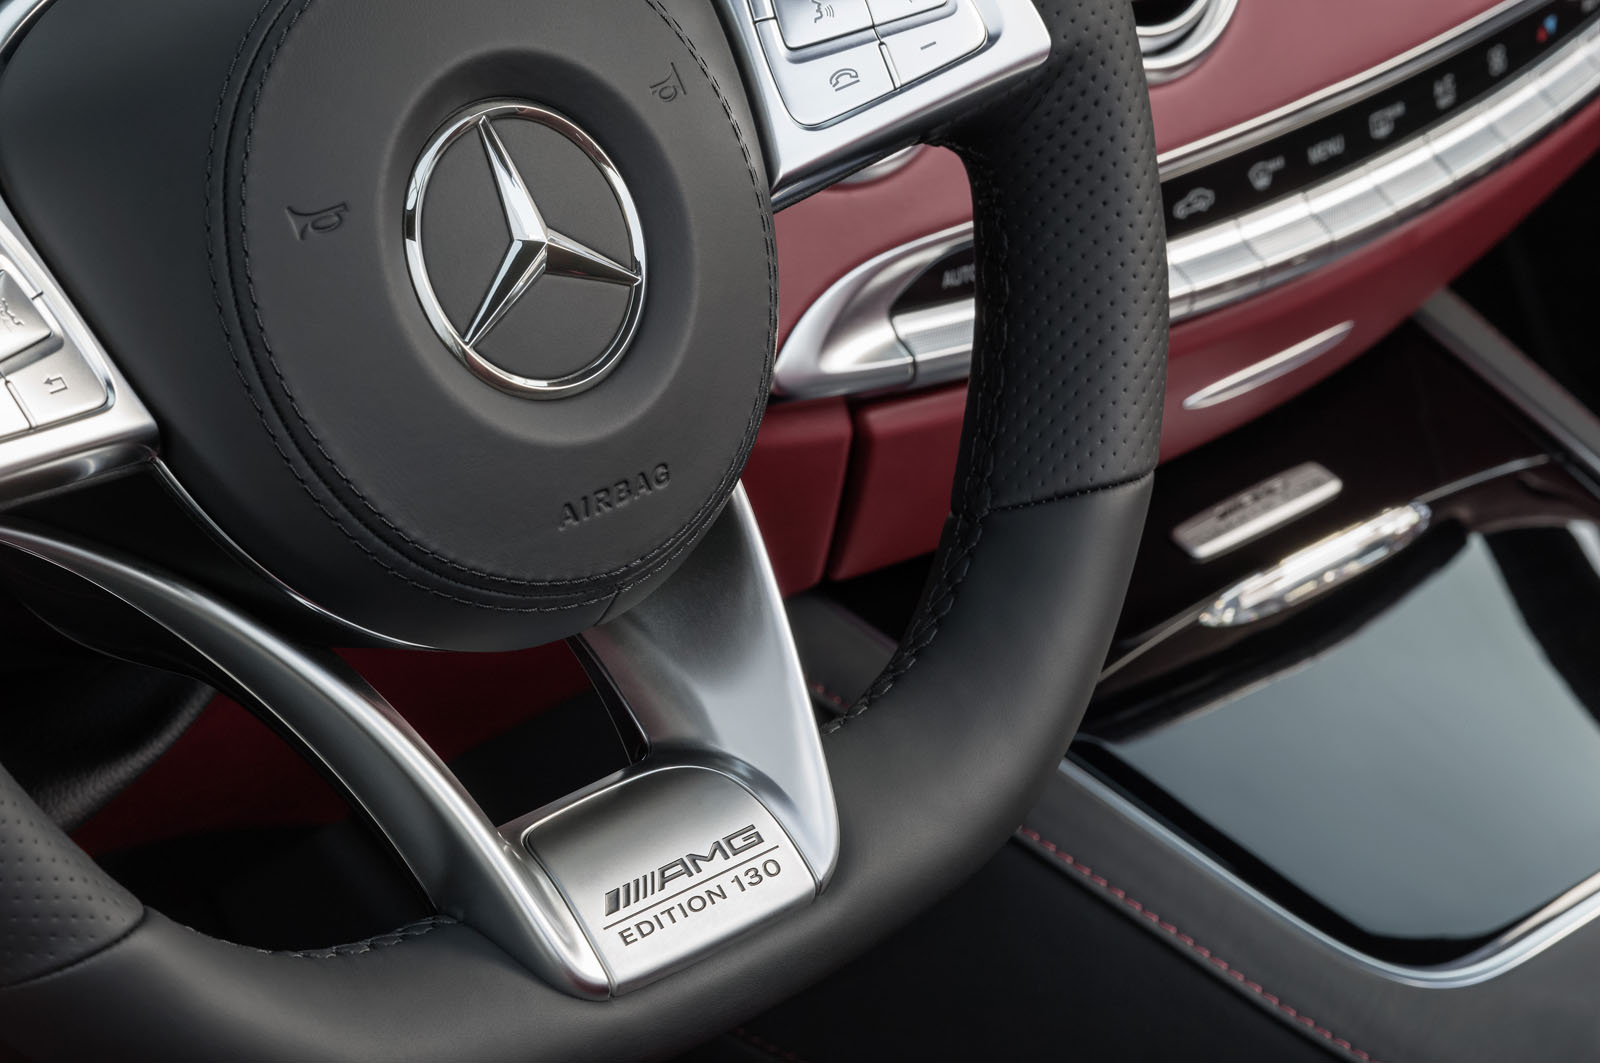 mercedes amg s63 cabrio edition 130 french driver. Black Bedroom Furniture Sets. Home Design Ideas